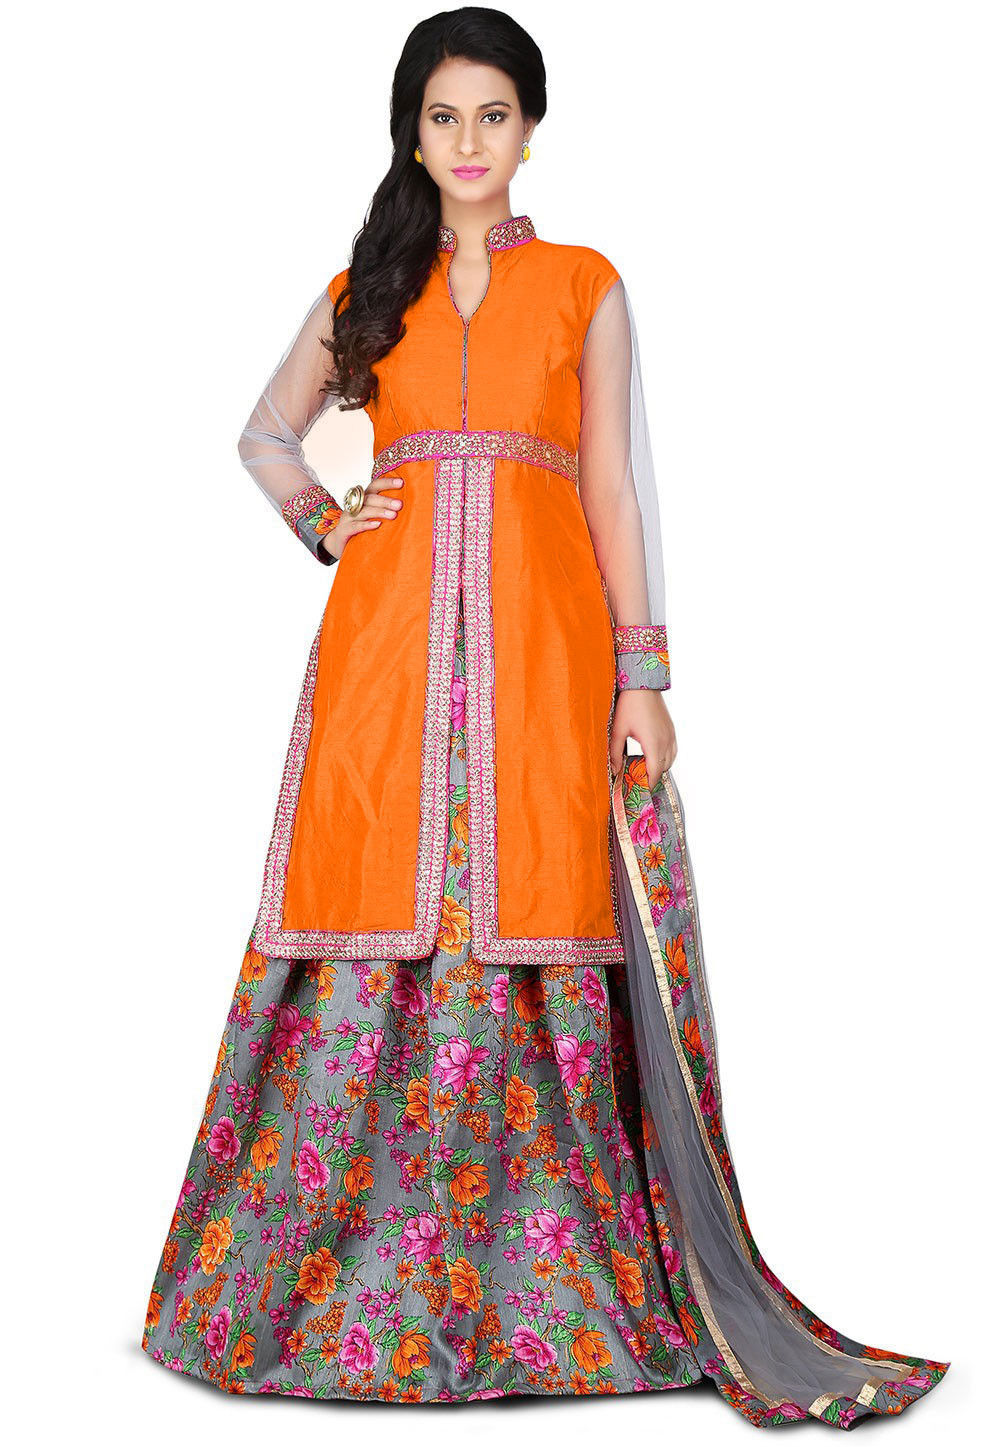 Printed Bhagalpuri Silk Lehenga in Orange and Grey